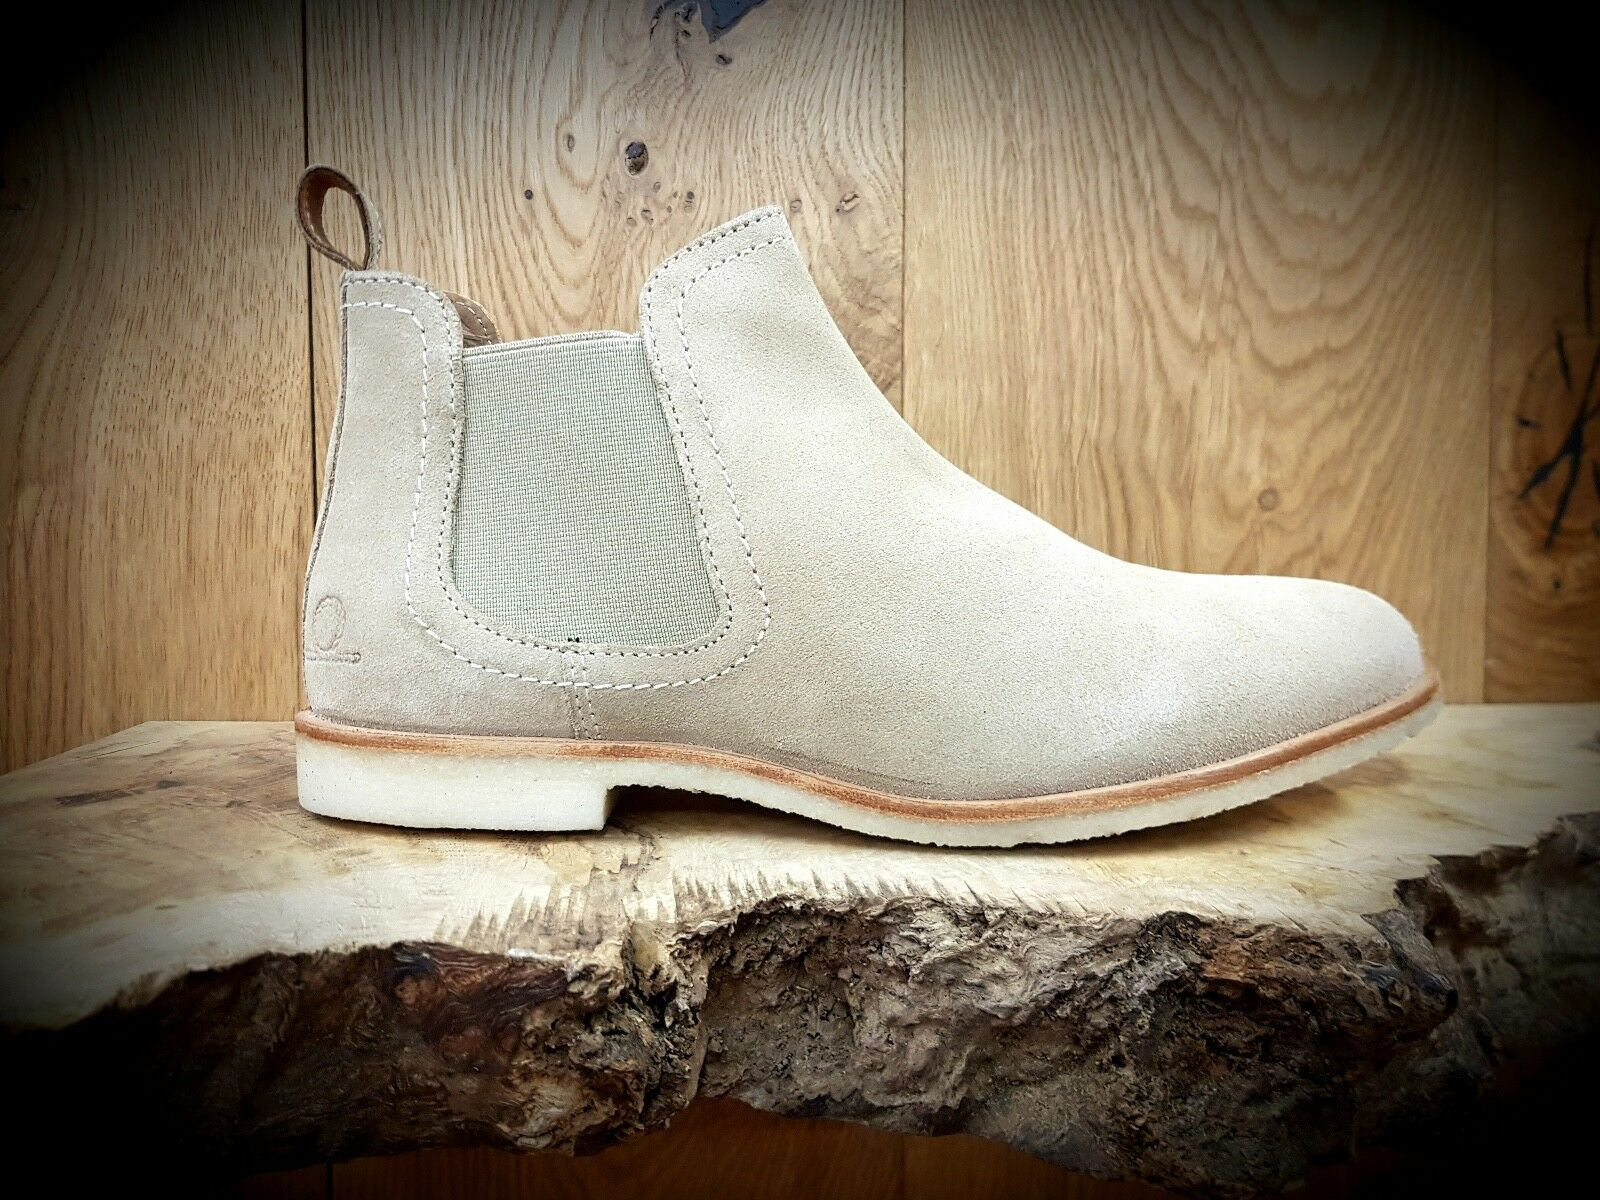 CHATHAM // Tori // Damenschuhe Sand / Tan  Cheslea Stiefel // NEW For SS18